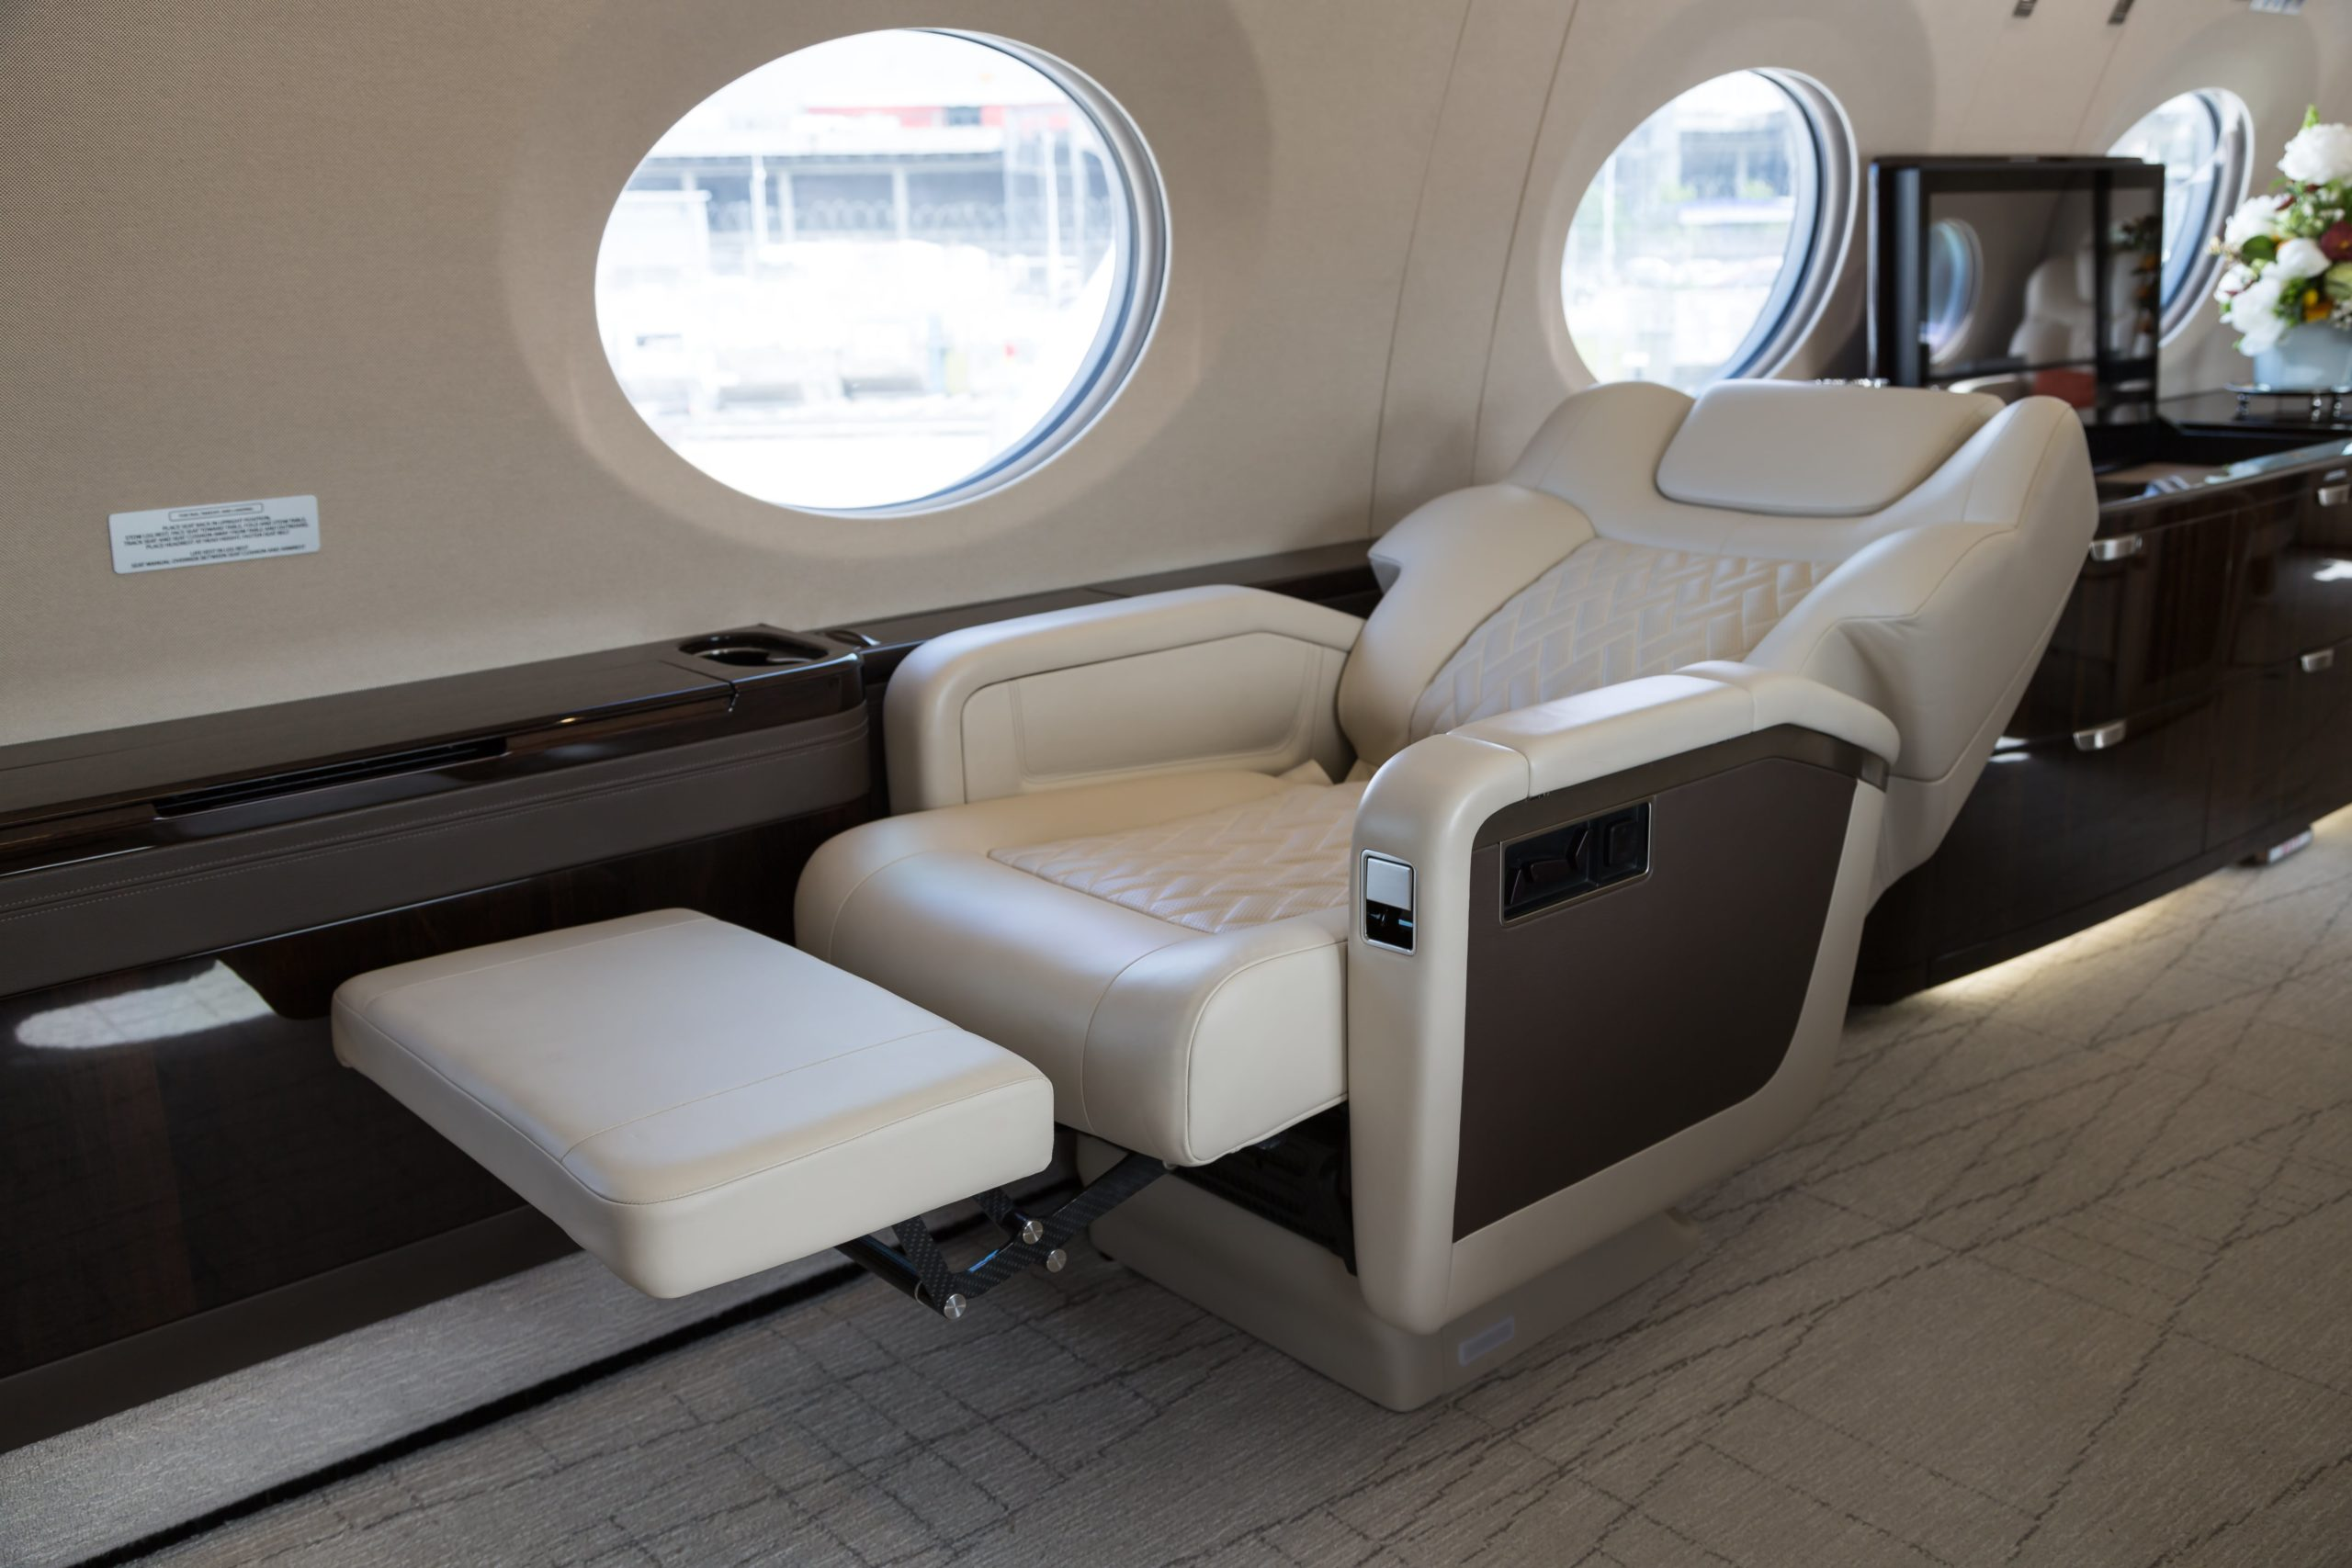 Reclined seat in the Gulfstream G600